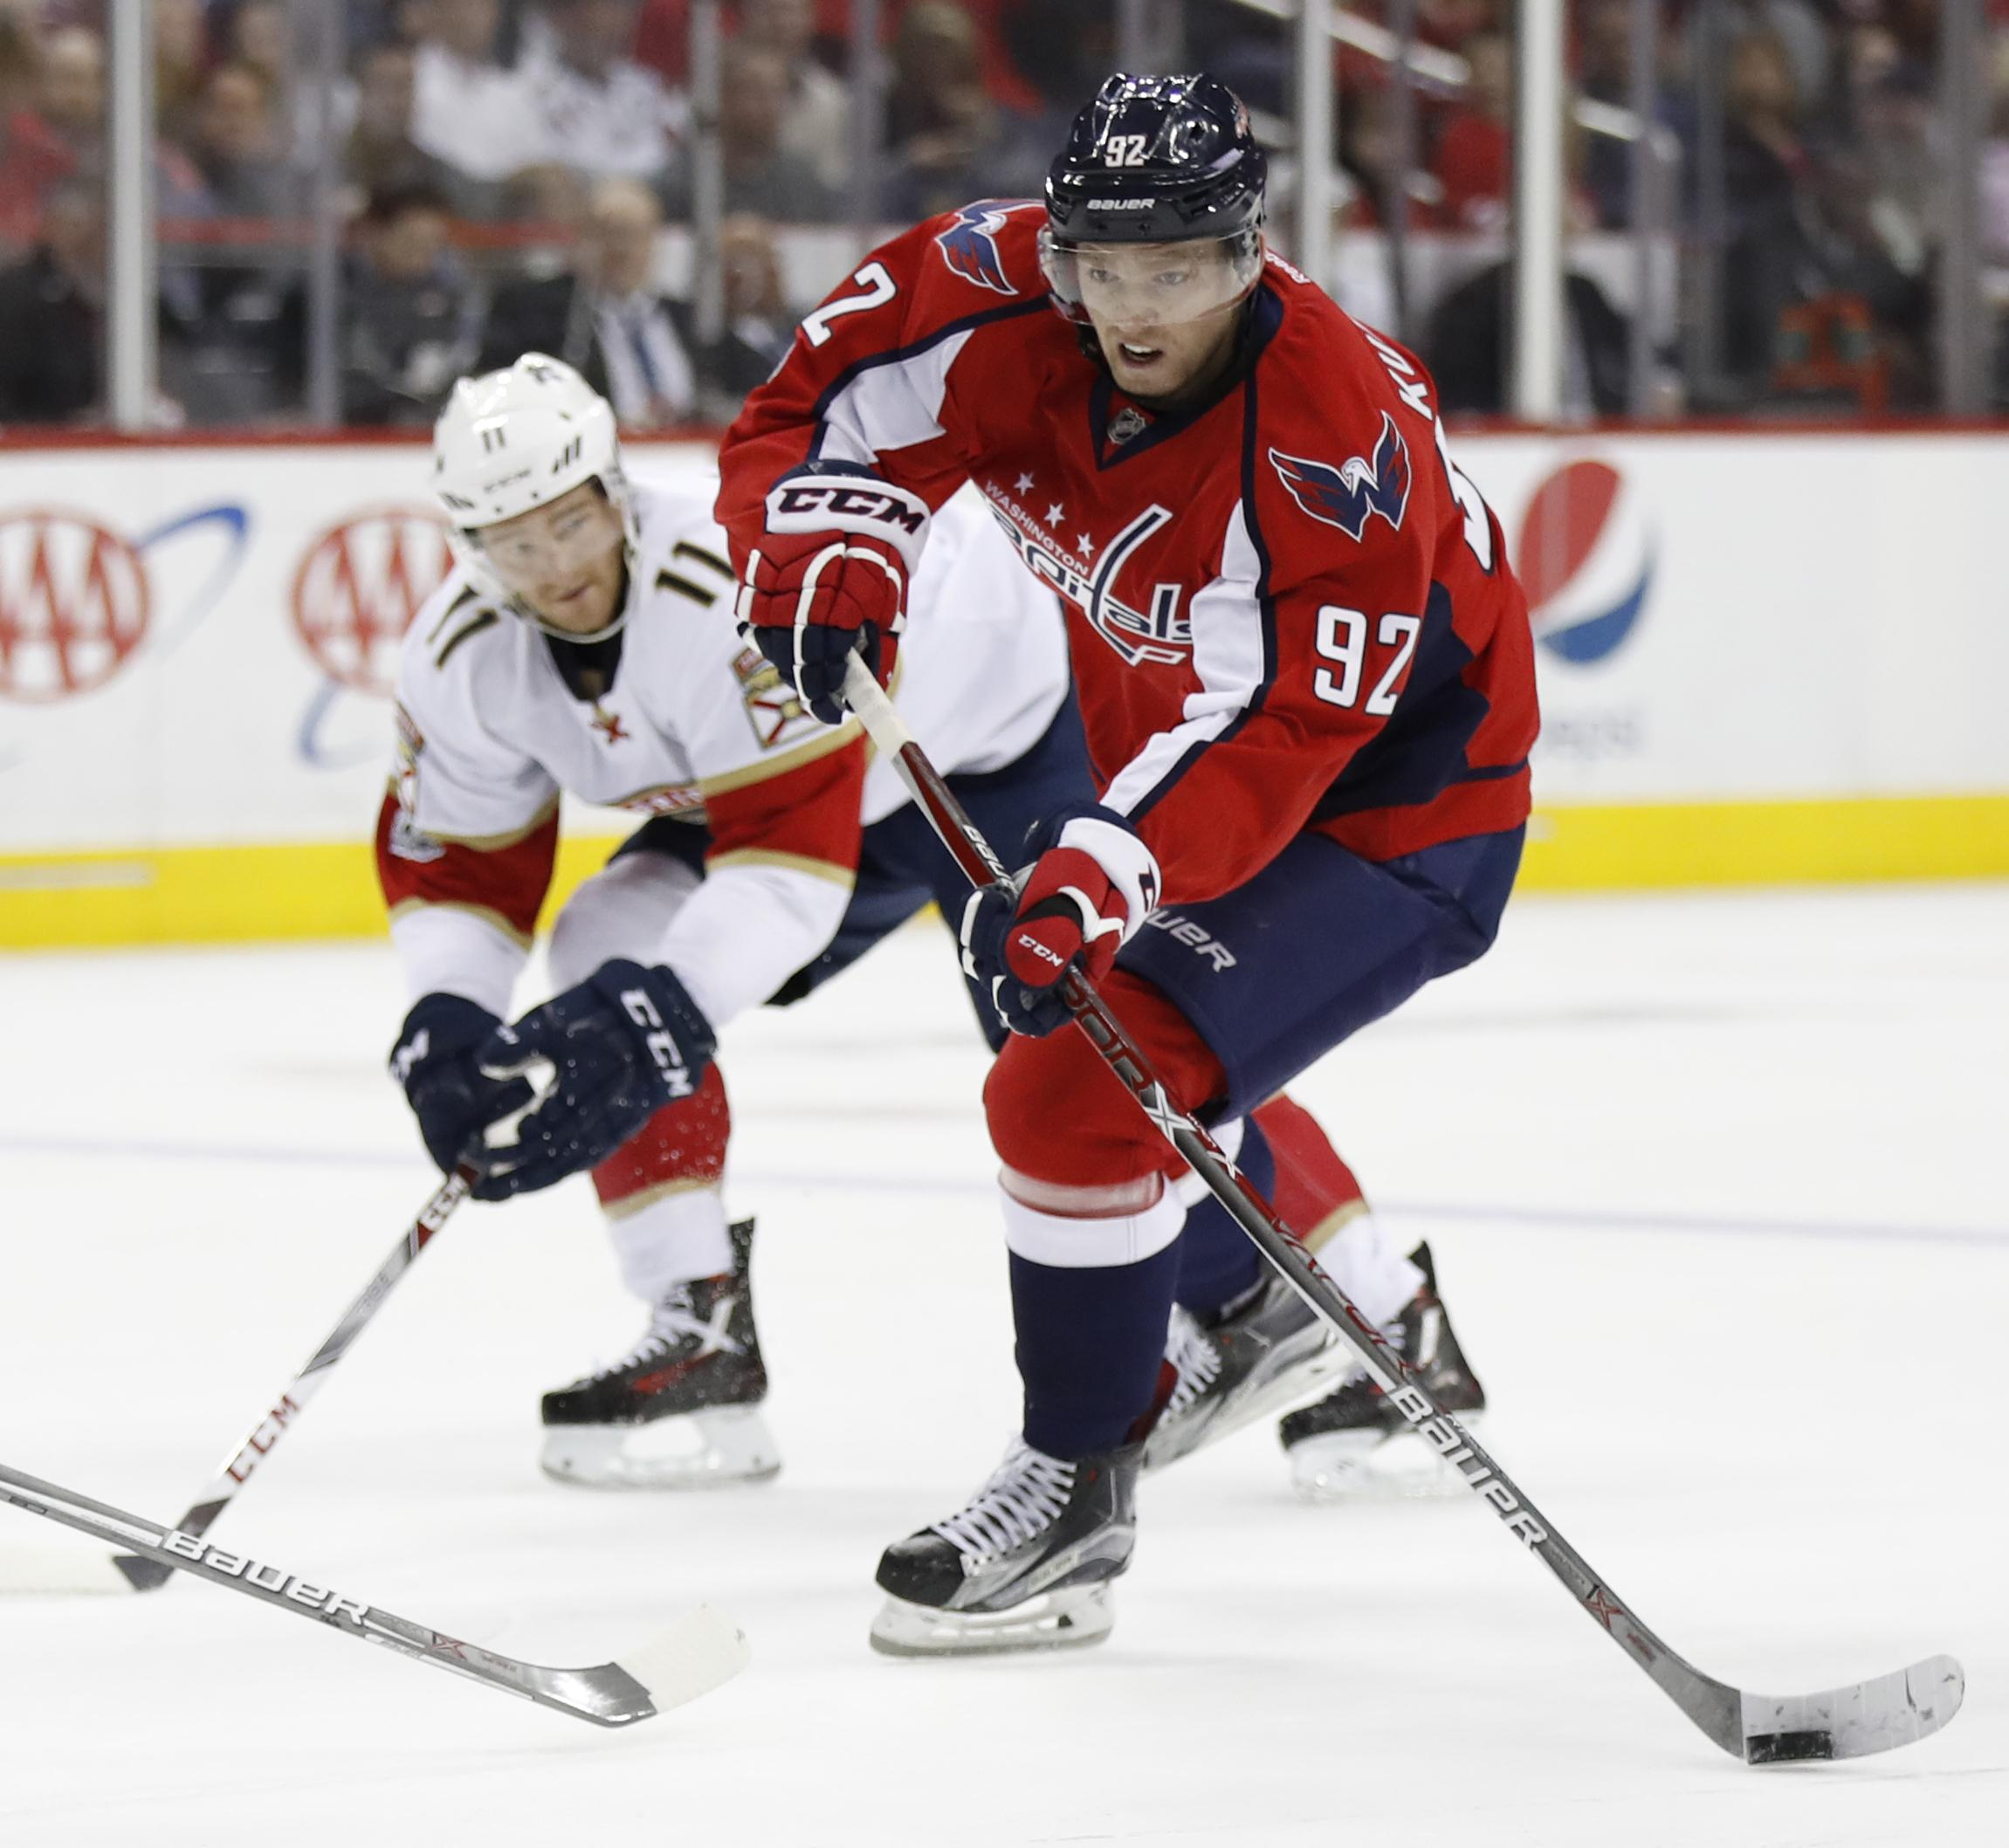 Panthers_capitals_hockey_83962